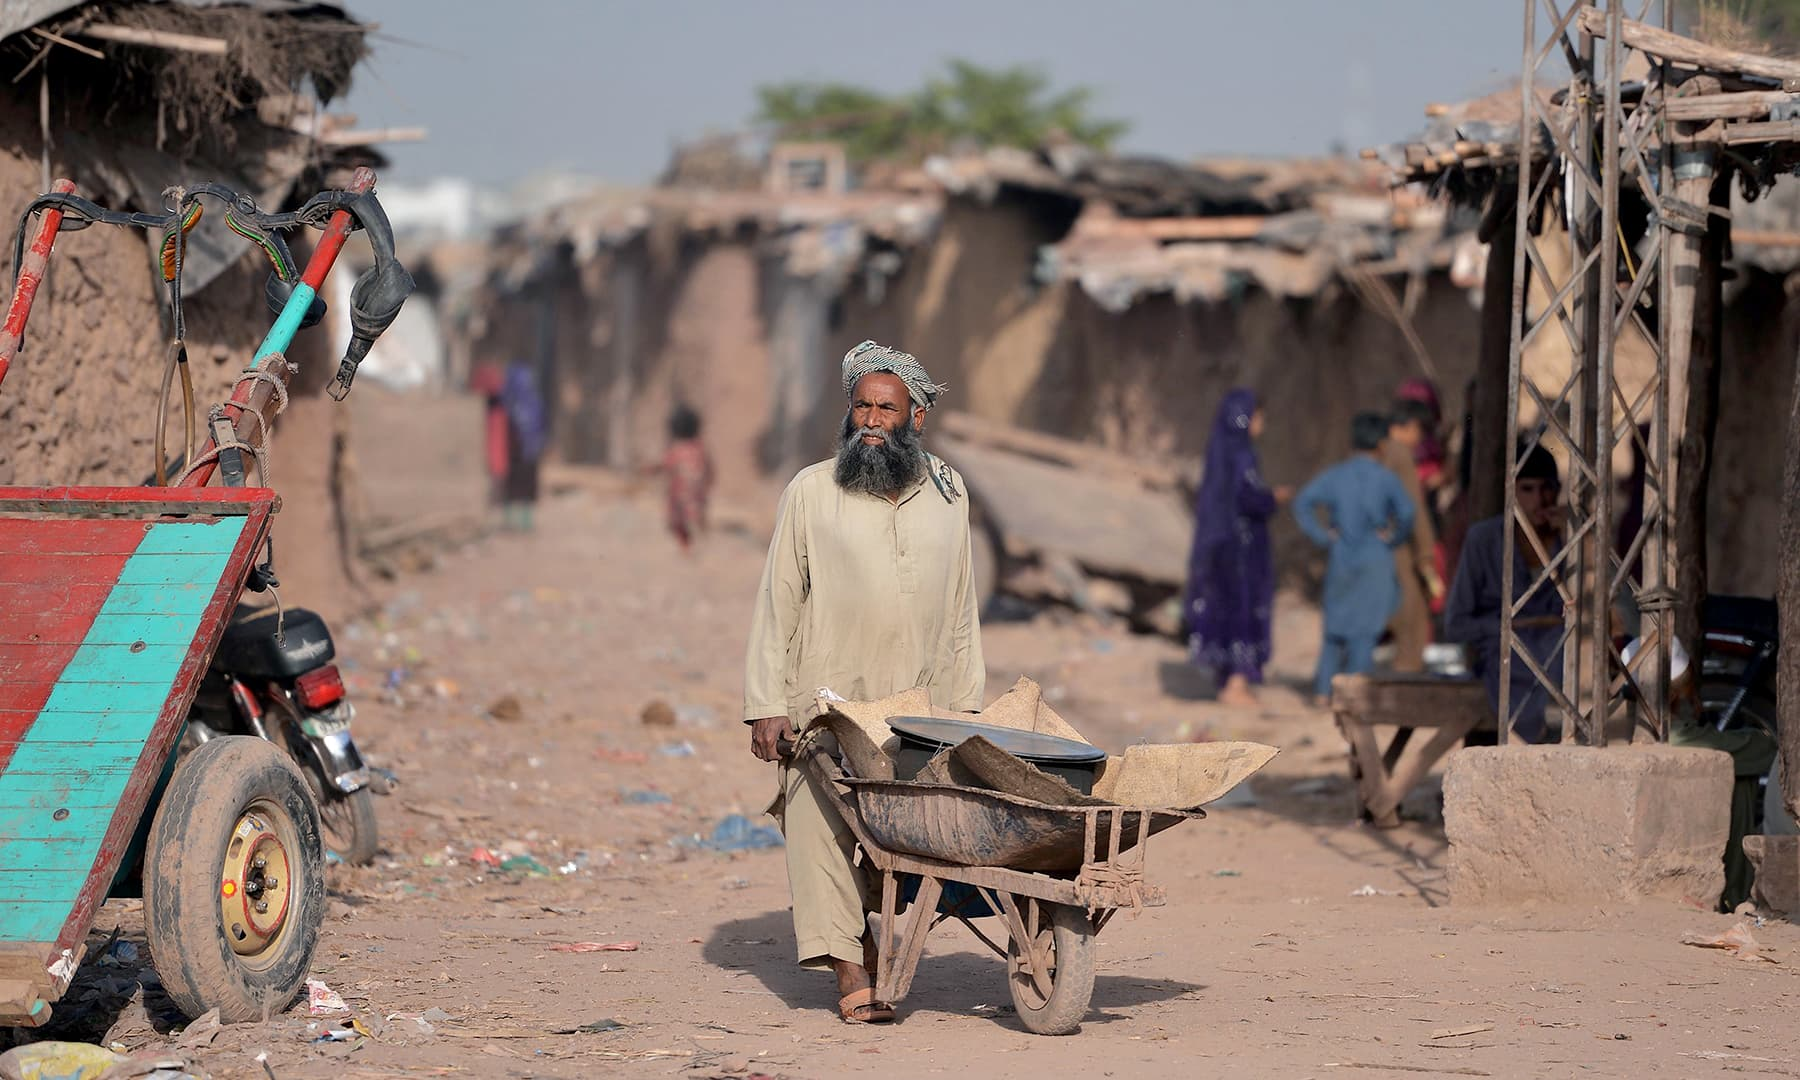 An Afghan refugee vendor pushes a wheelbarrow at a refugee camp on the outskirts of Islamabad. — AFP